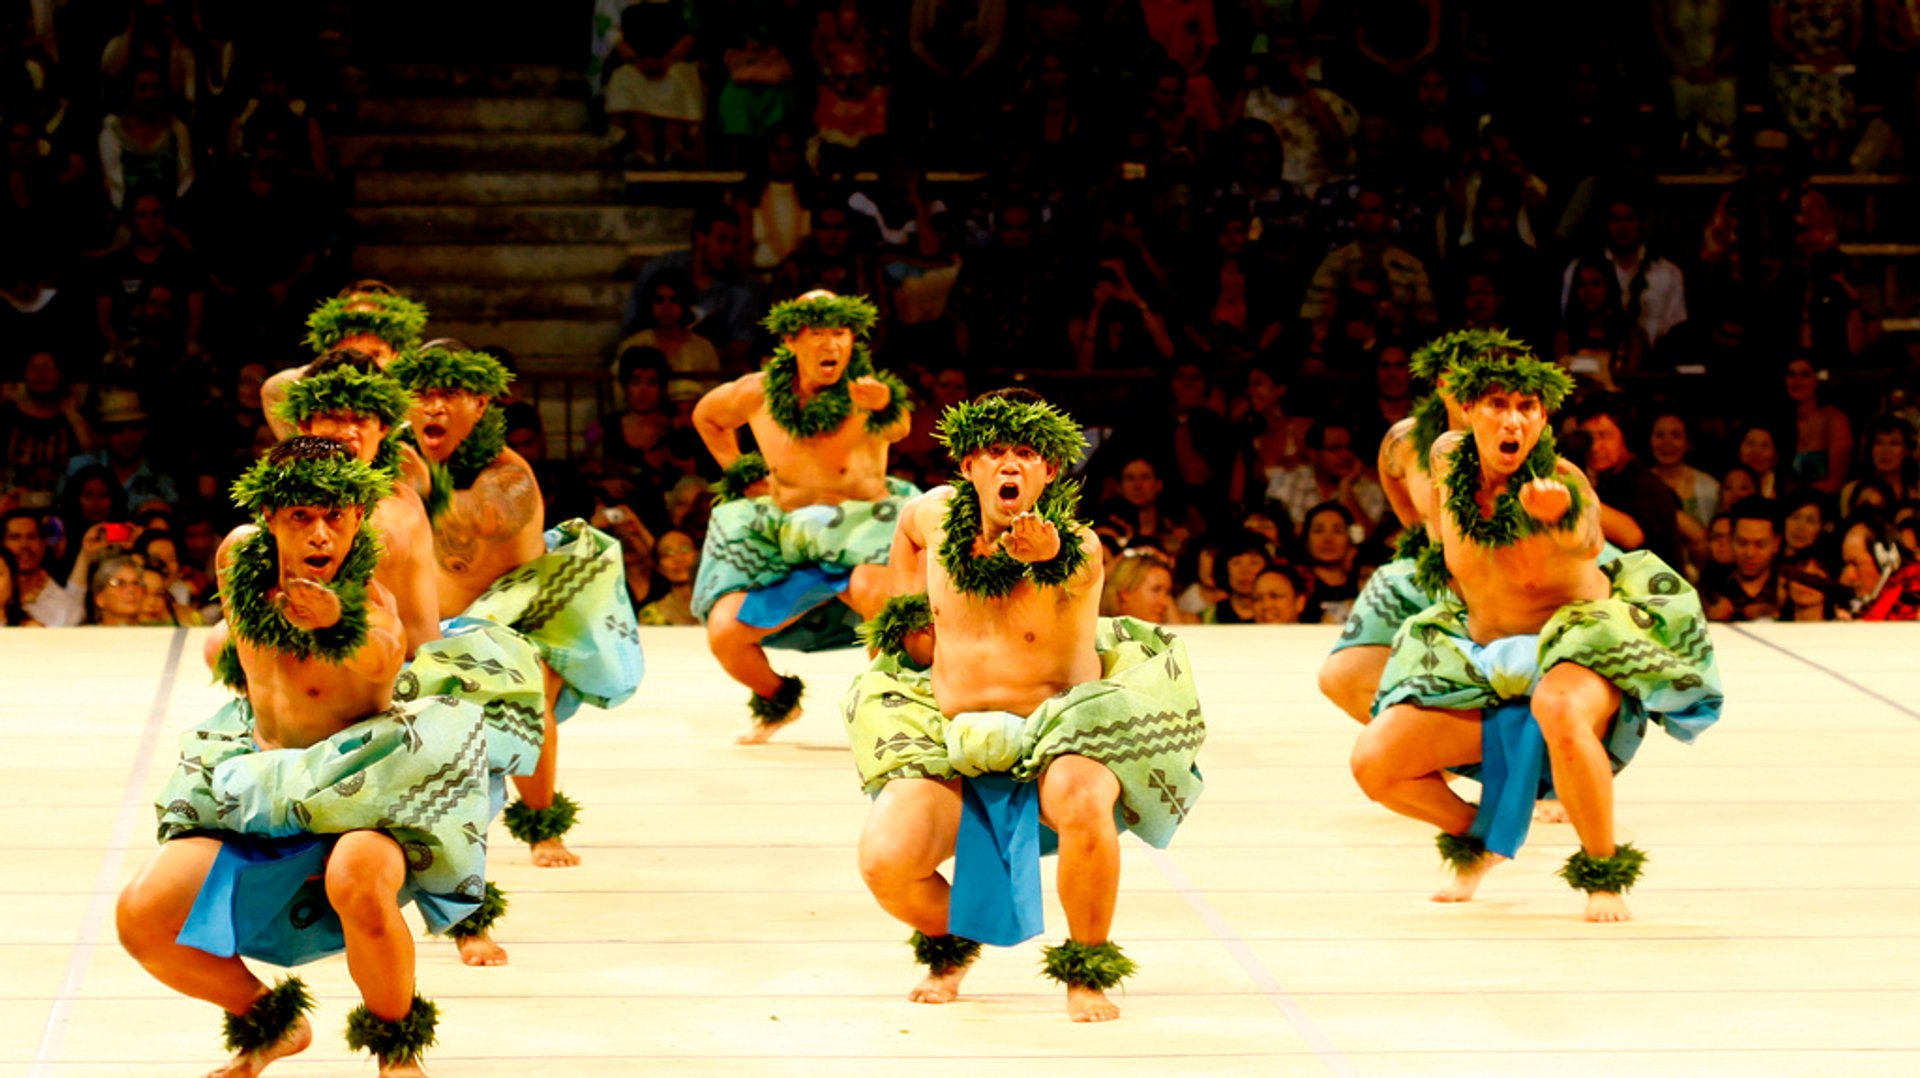 Merrie Monarch Festival in Hawaii - Best Season 2019